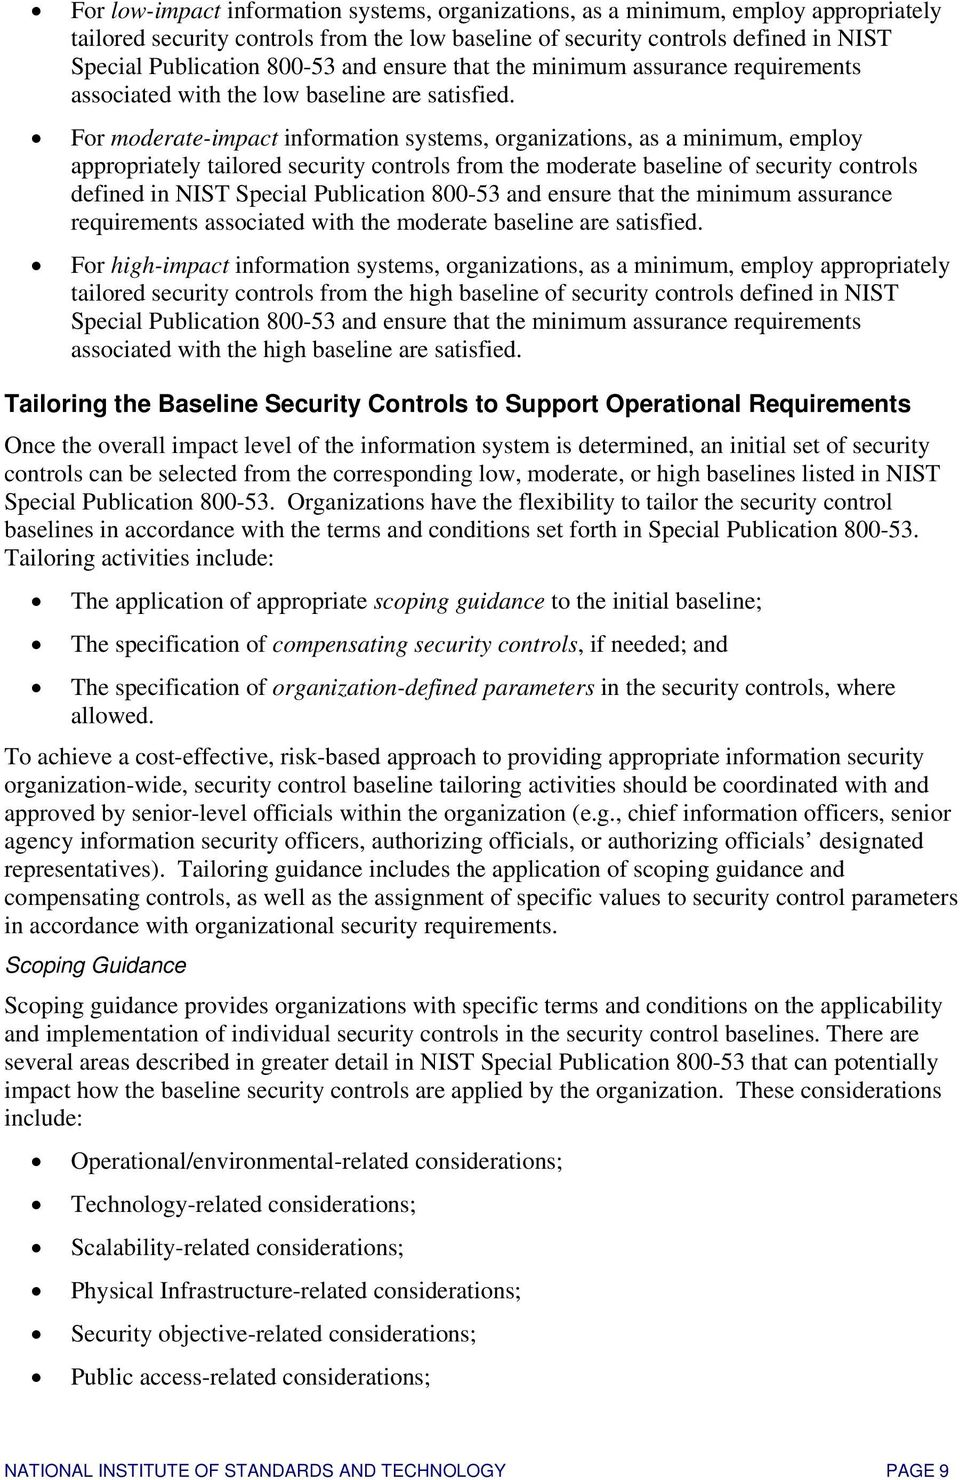 For moderate-impact information systems, organizations, as a minimum, employ appropriately tailored security controls from the moderate baseline of security controls defined in NIST Special